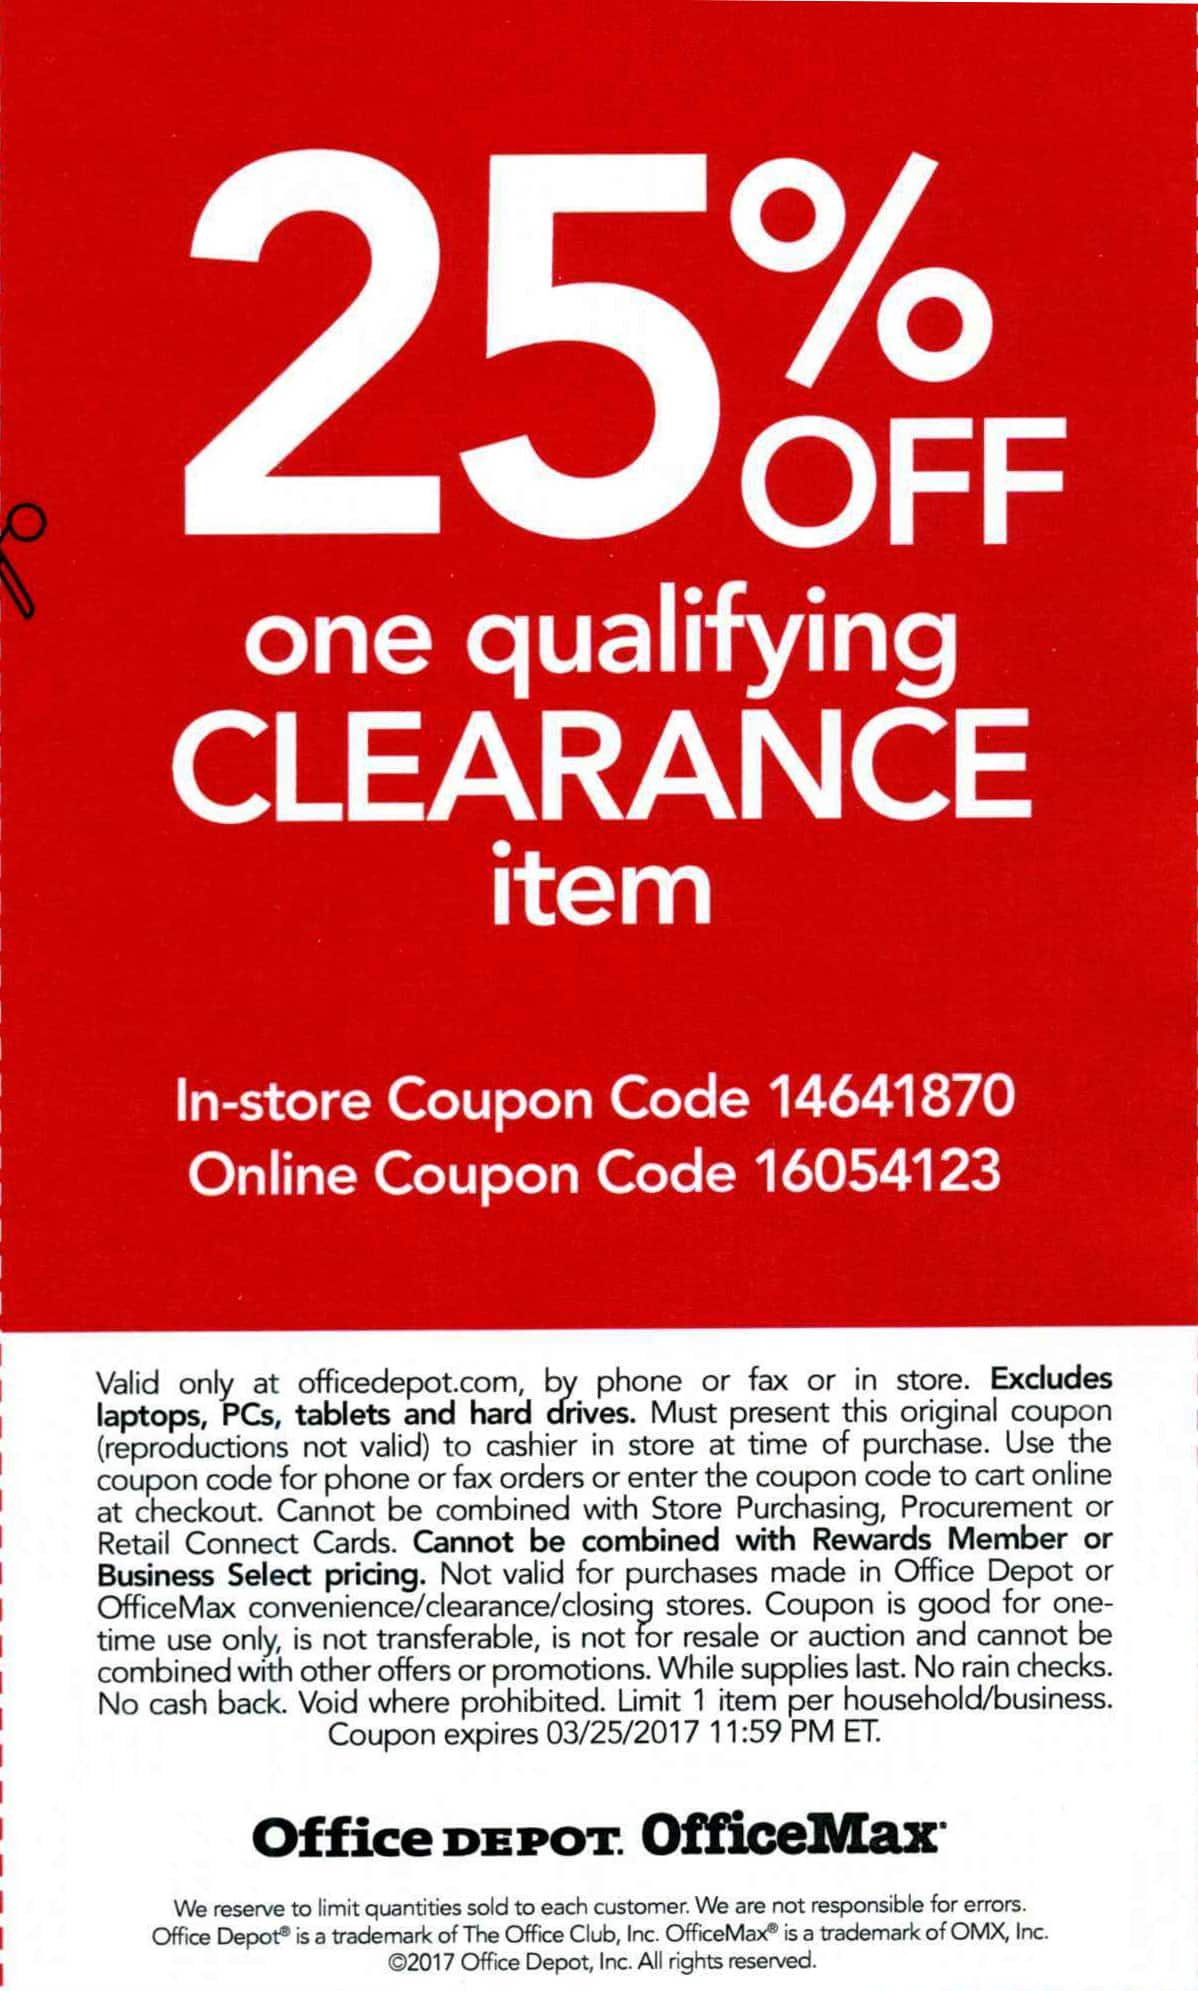 Office depot rewards coupons - Officemax Office Depot 25 Off One Qualifying Clearance Item Good Until 03 25 2017 Online Slickdeals Net